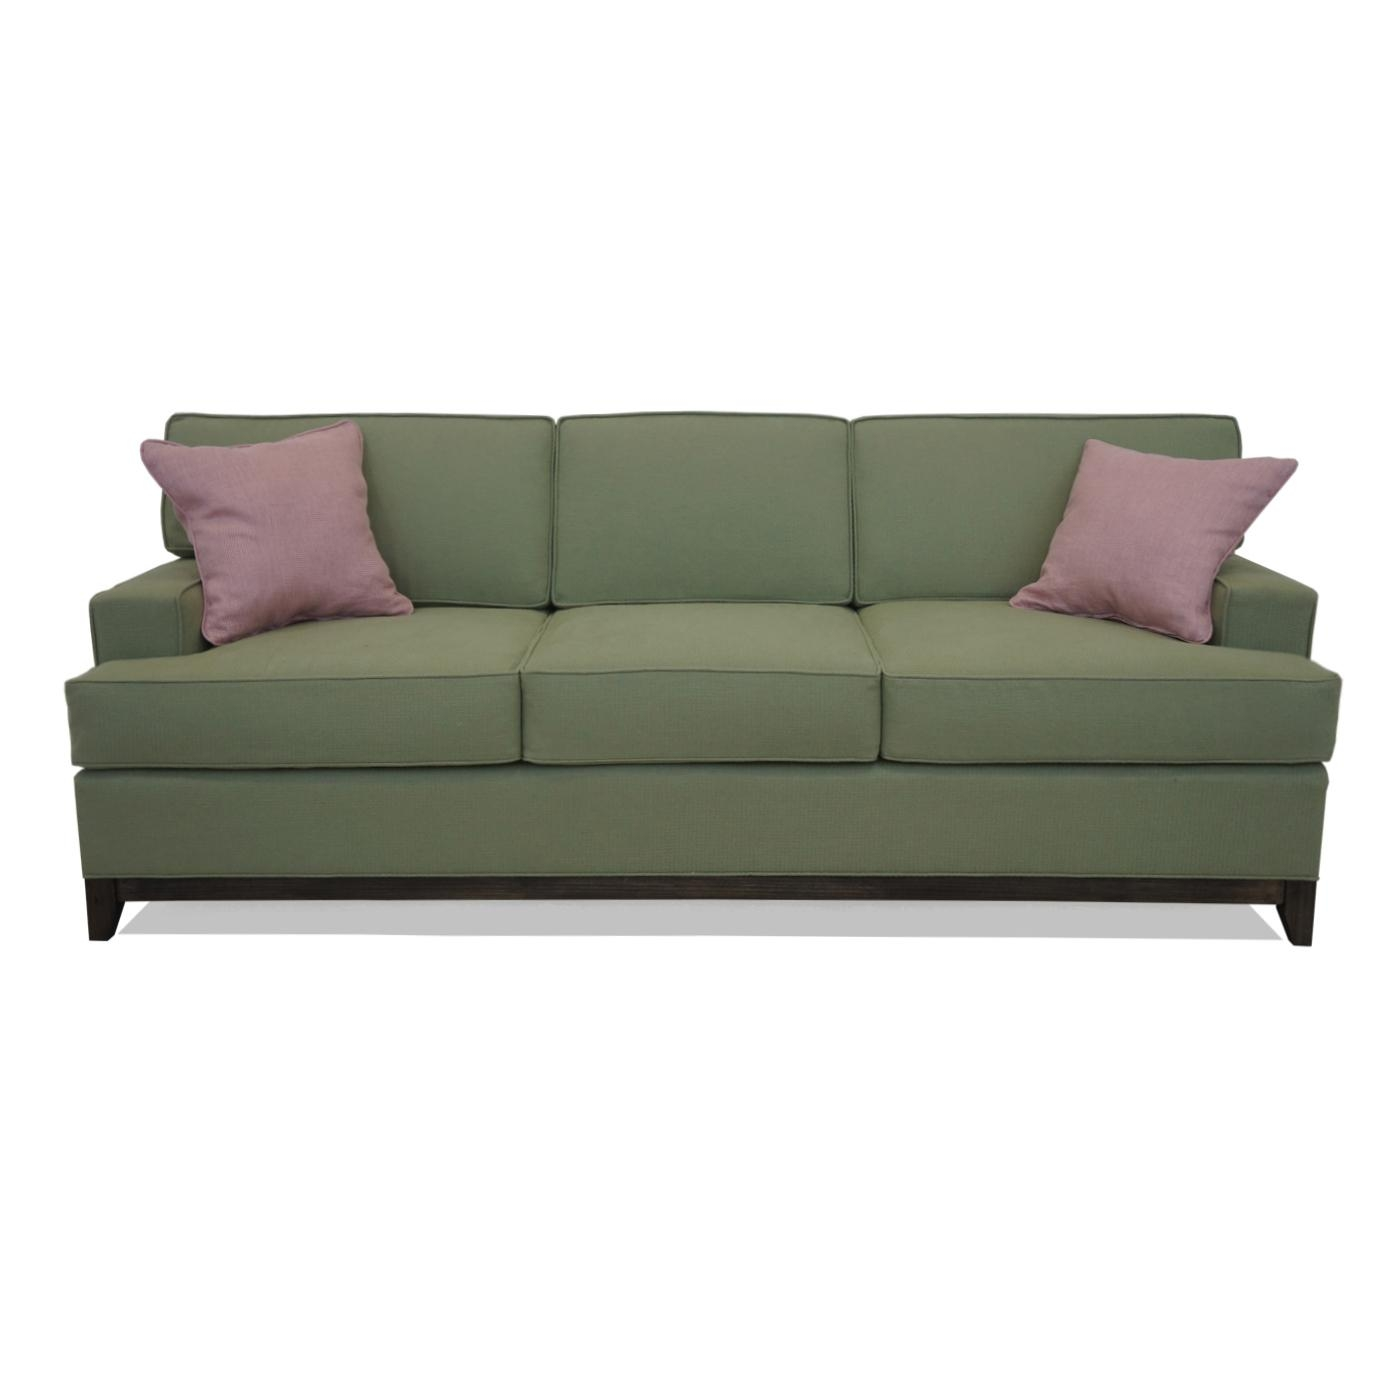 The Best Places To Shop For Eco Friendly Furniture Intended For Eco Friendly Sectional Sofa (View 3 of 15)